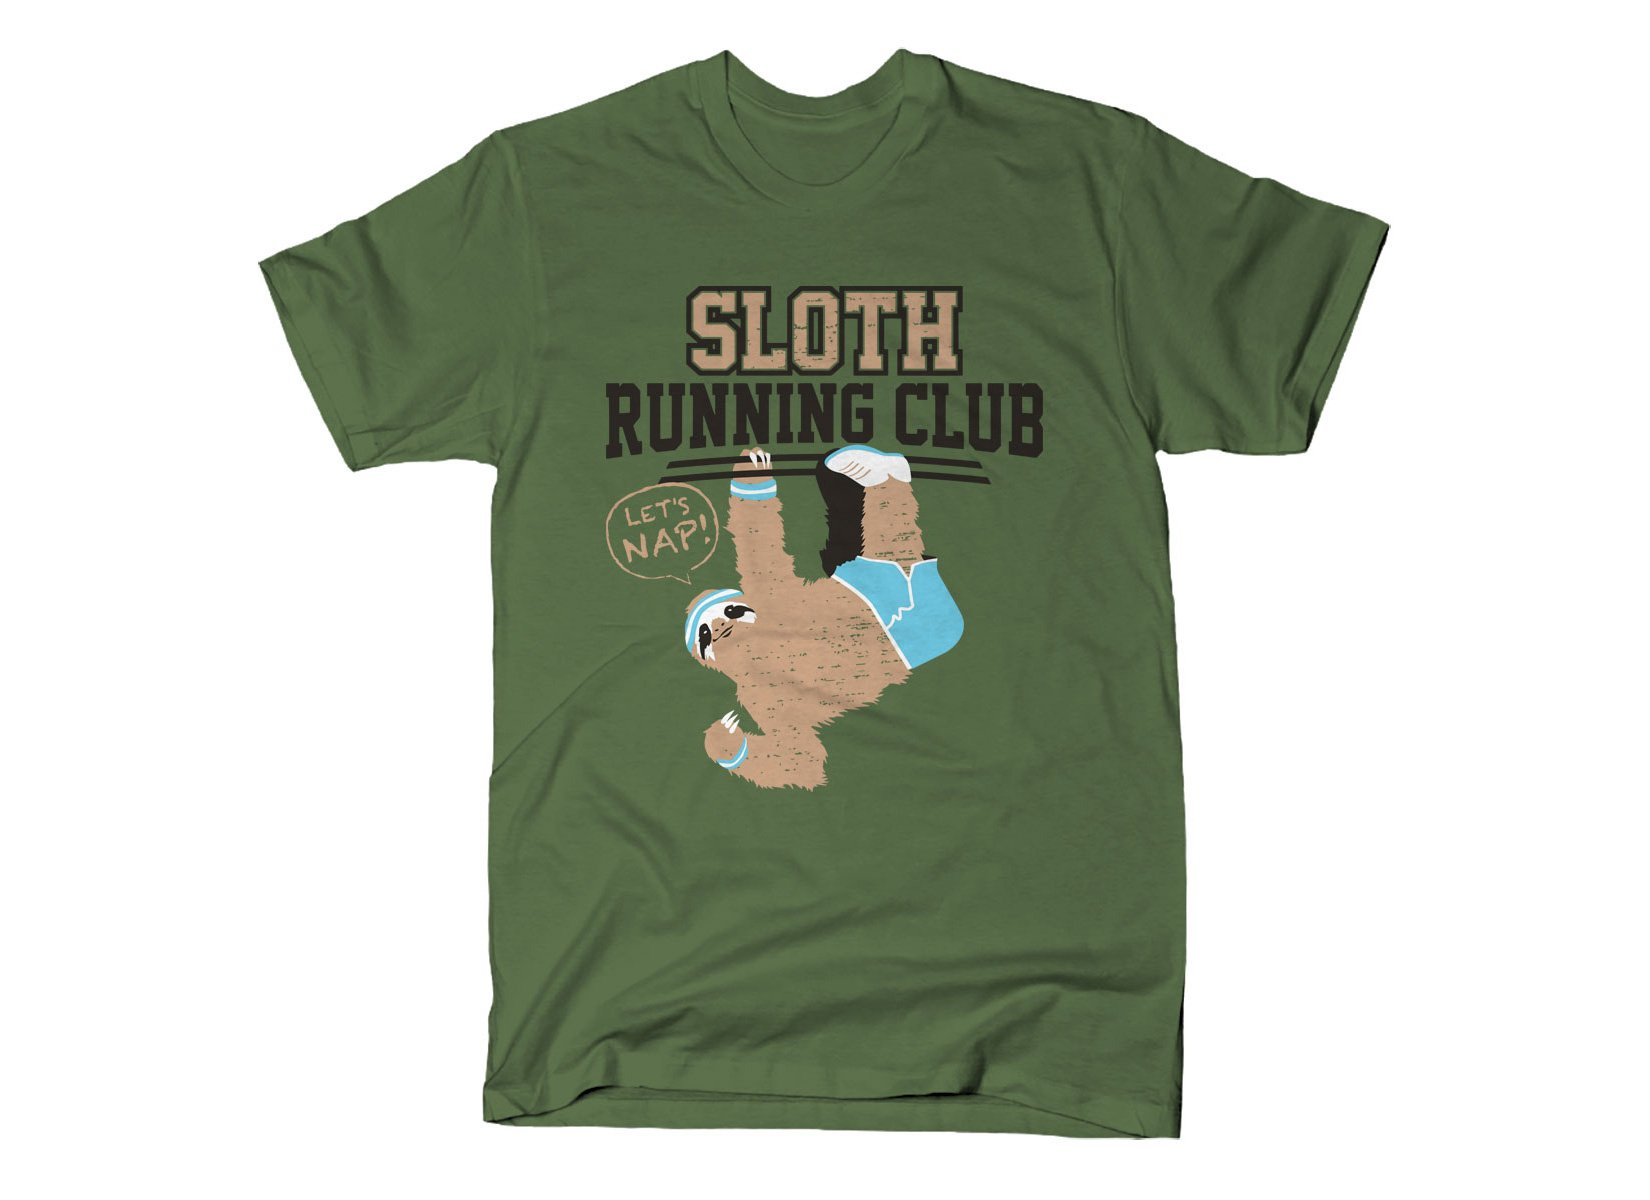 Sloth Running Club on Mens T-Shirt